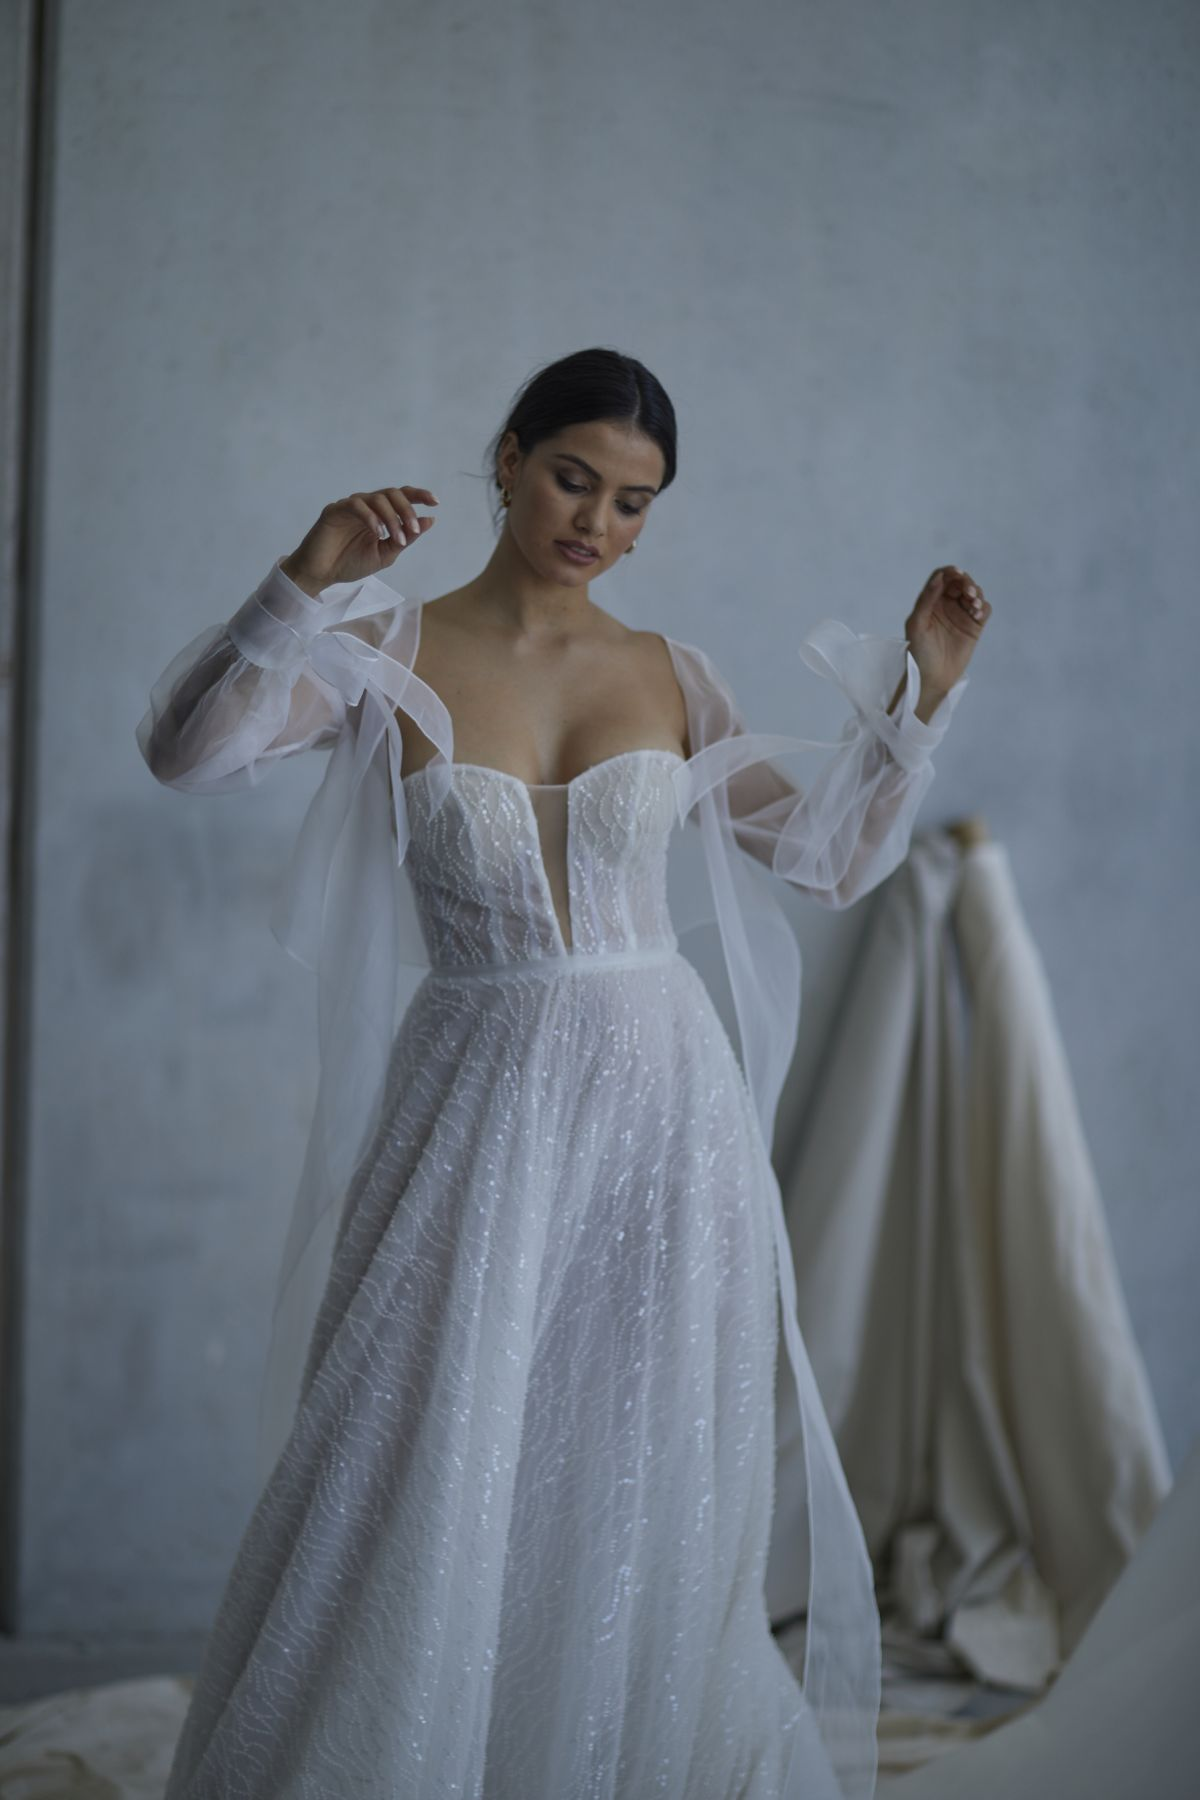 Lopez In Ivory Wedding Gown 16_2610 1800Px